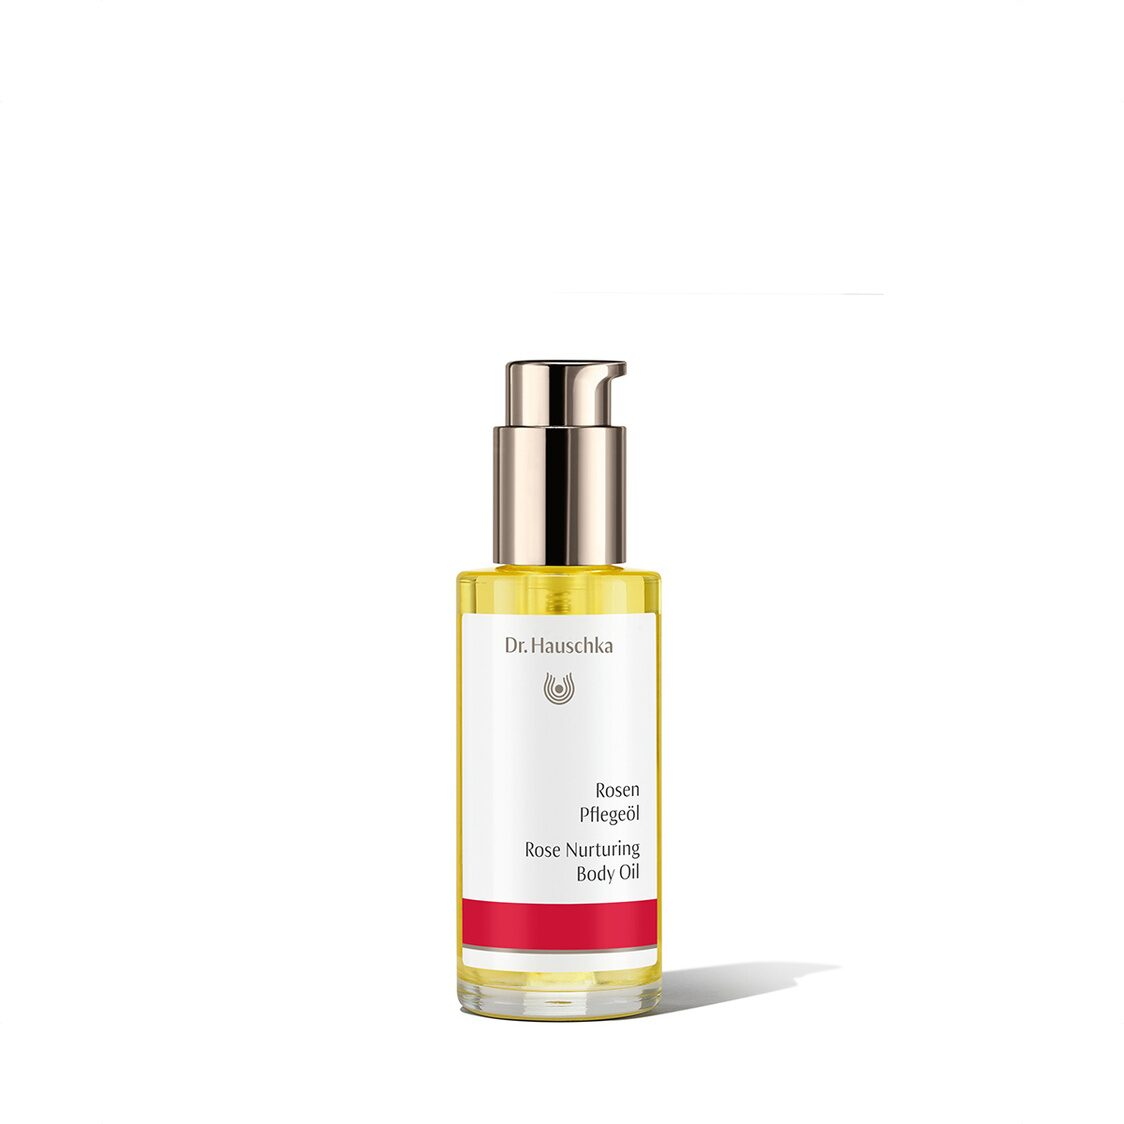 DrHauschka Rose Nurturing Body Oil 75ml